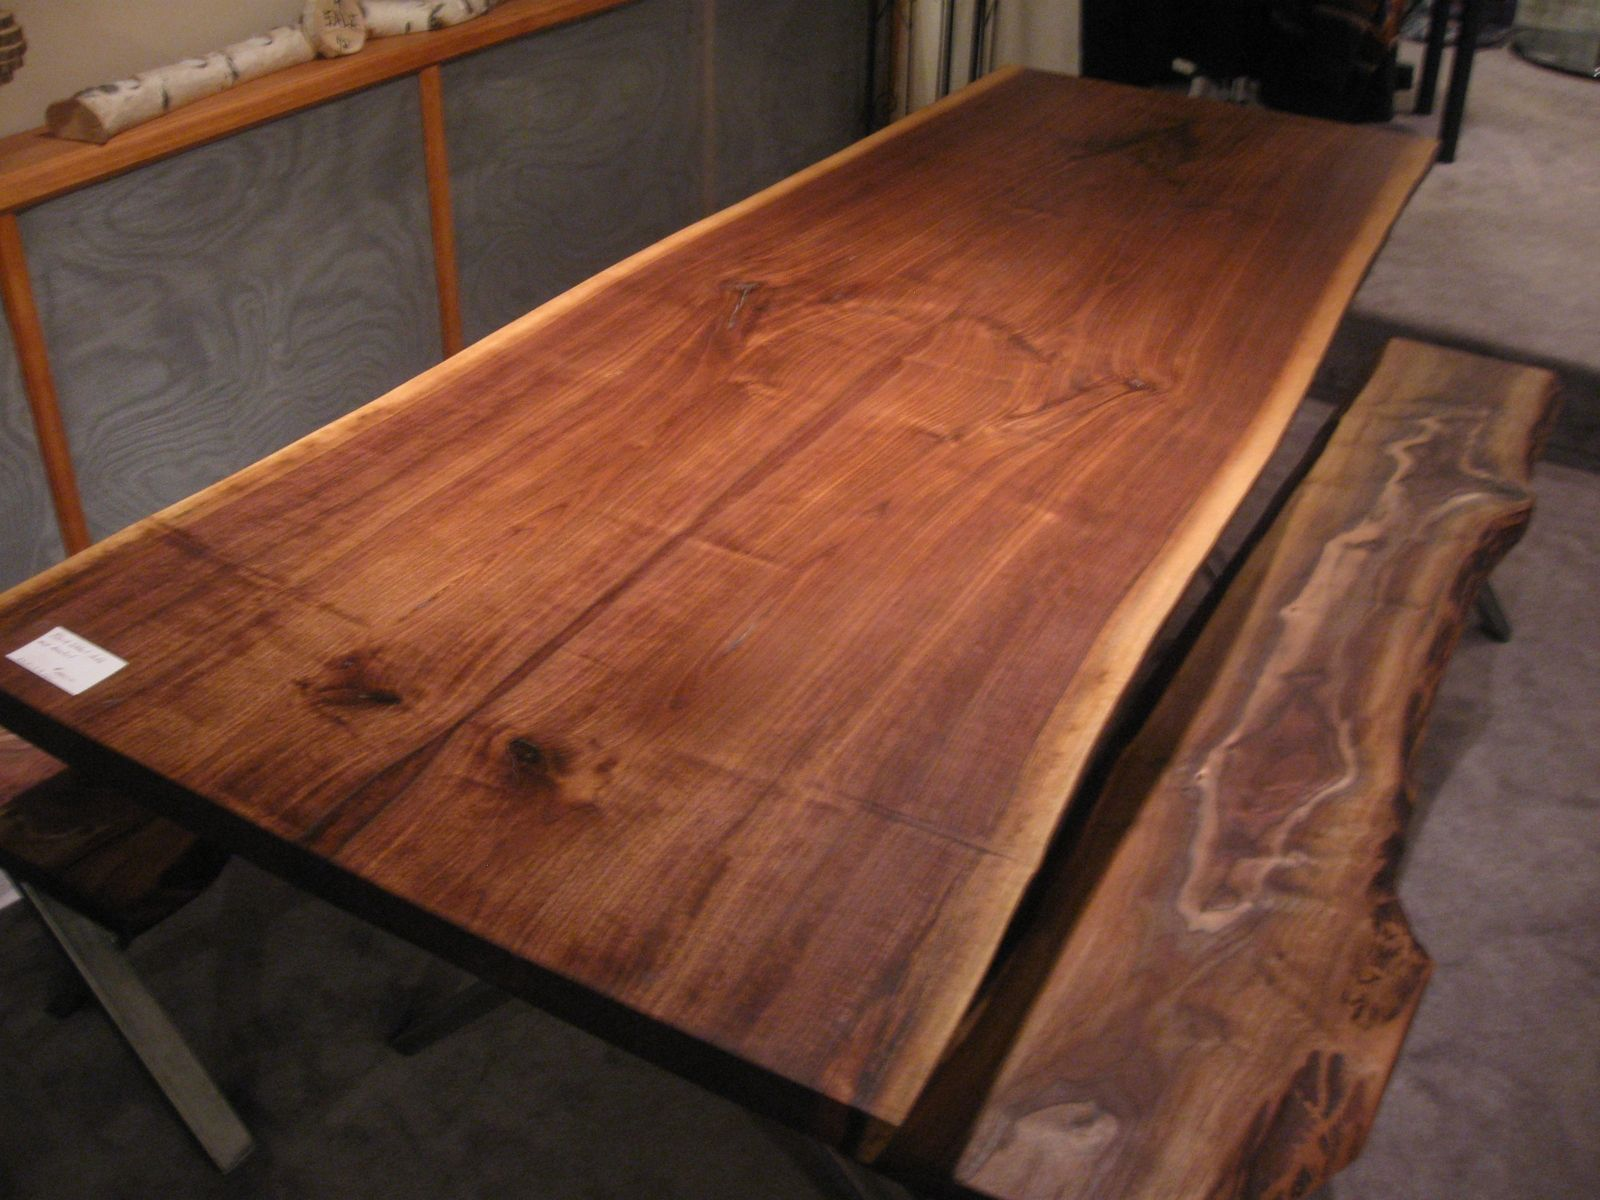 Handmade Walnut Live Edge Slab X Base Table by Woodrich  : 917438936 from www.custommade.com size 1600 x 1200 jpeg 211kB